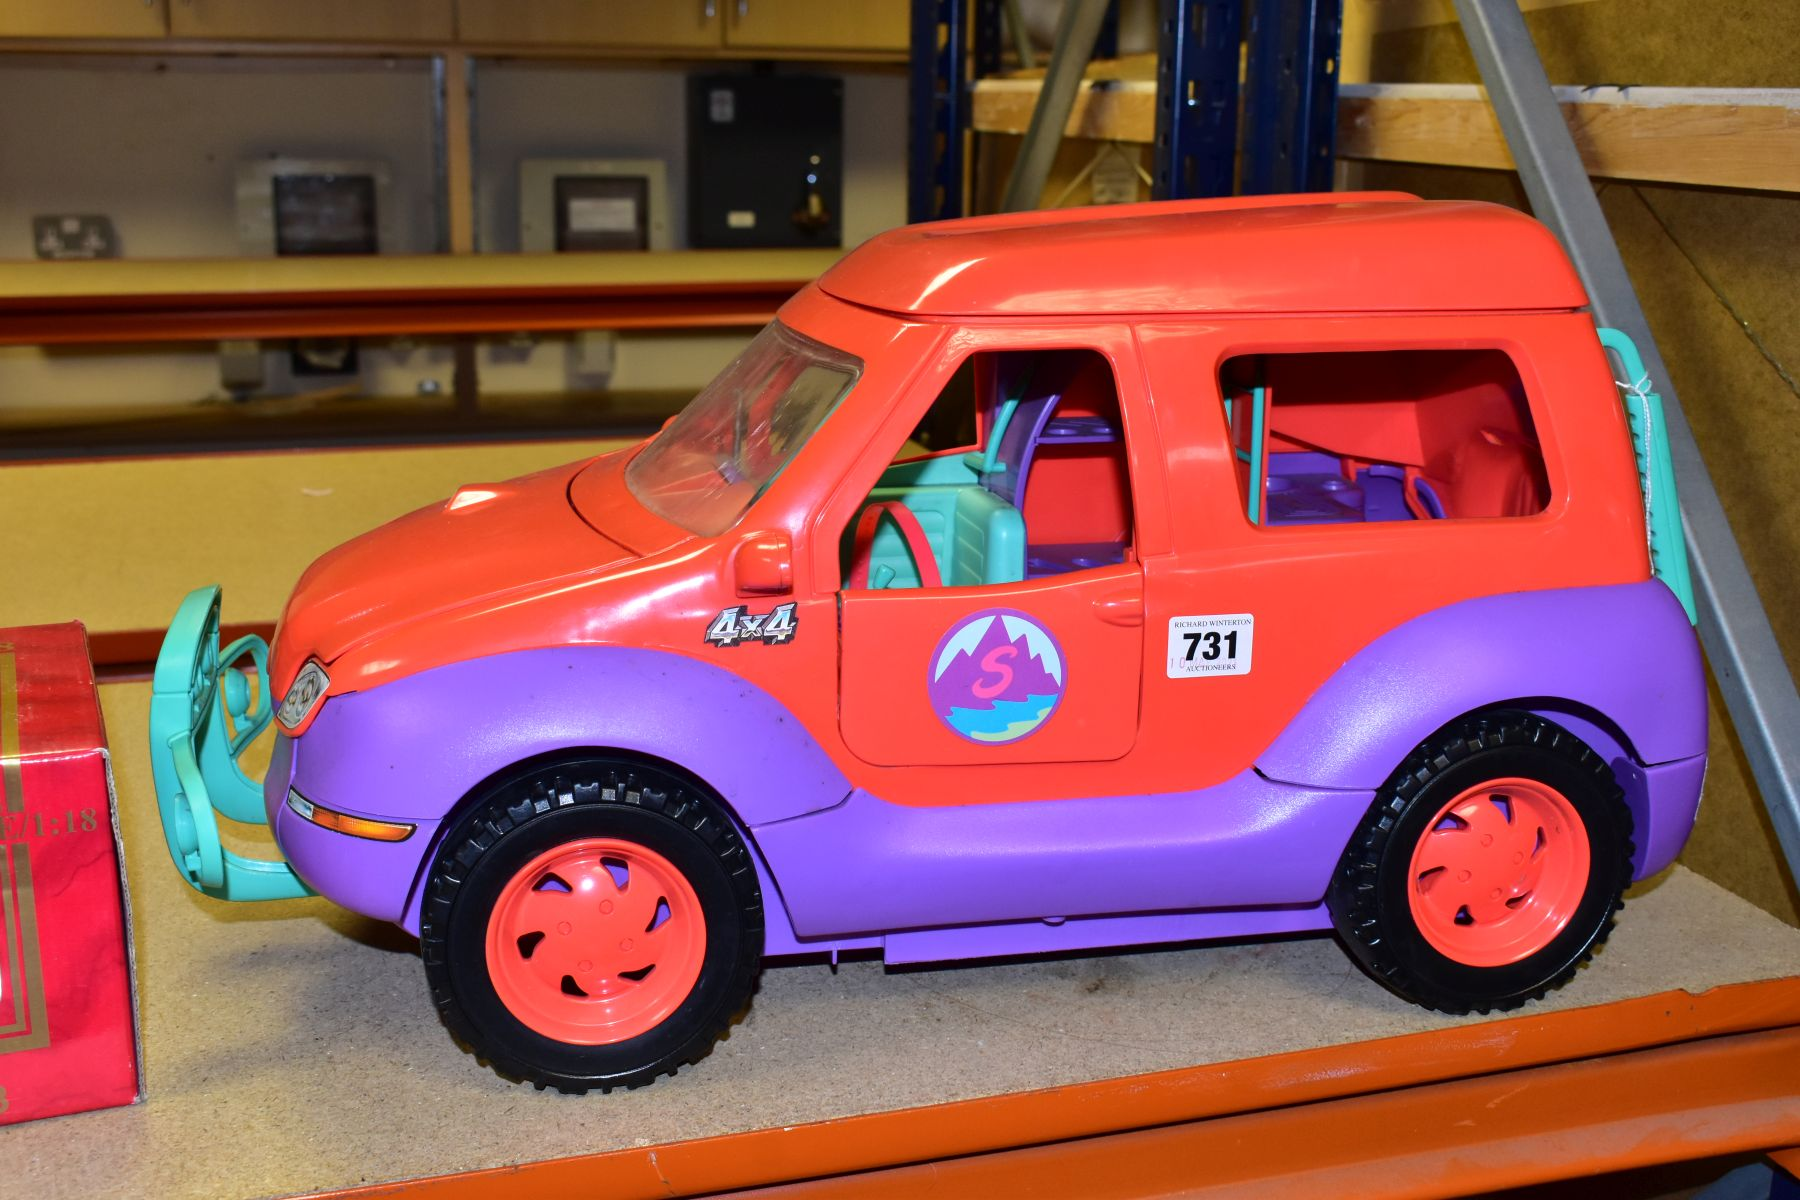 AN UNBOXED SINDY - SPACE 4X4 CAMPER VAN/HOLIDAY HOME, missing some accessories but otherwise appears